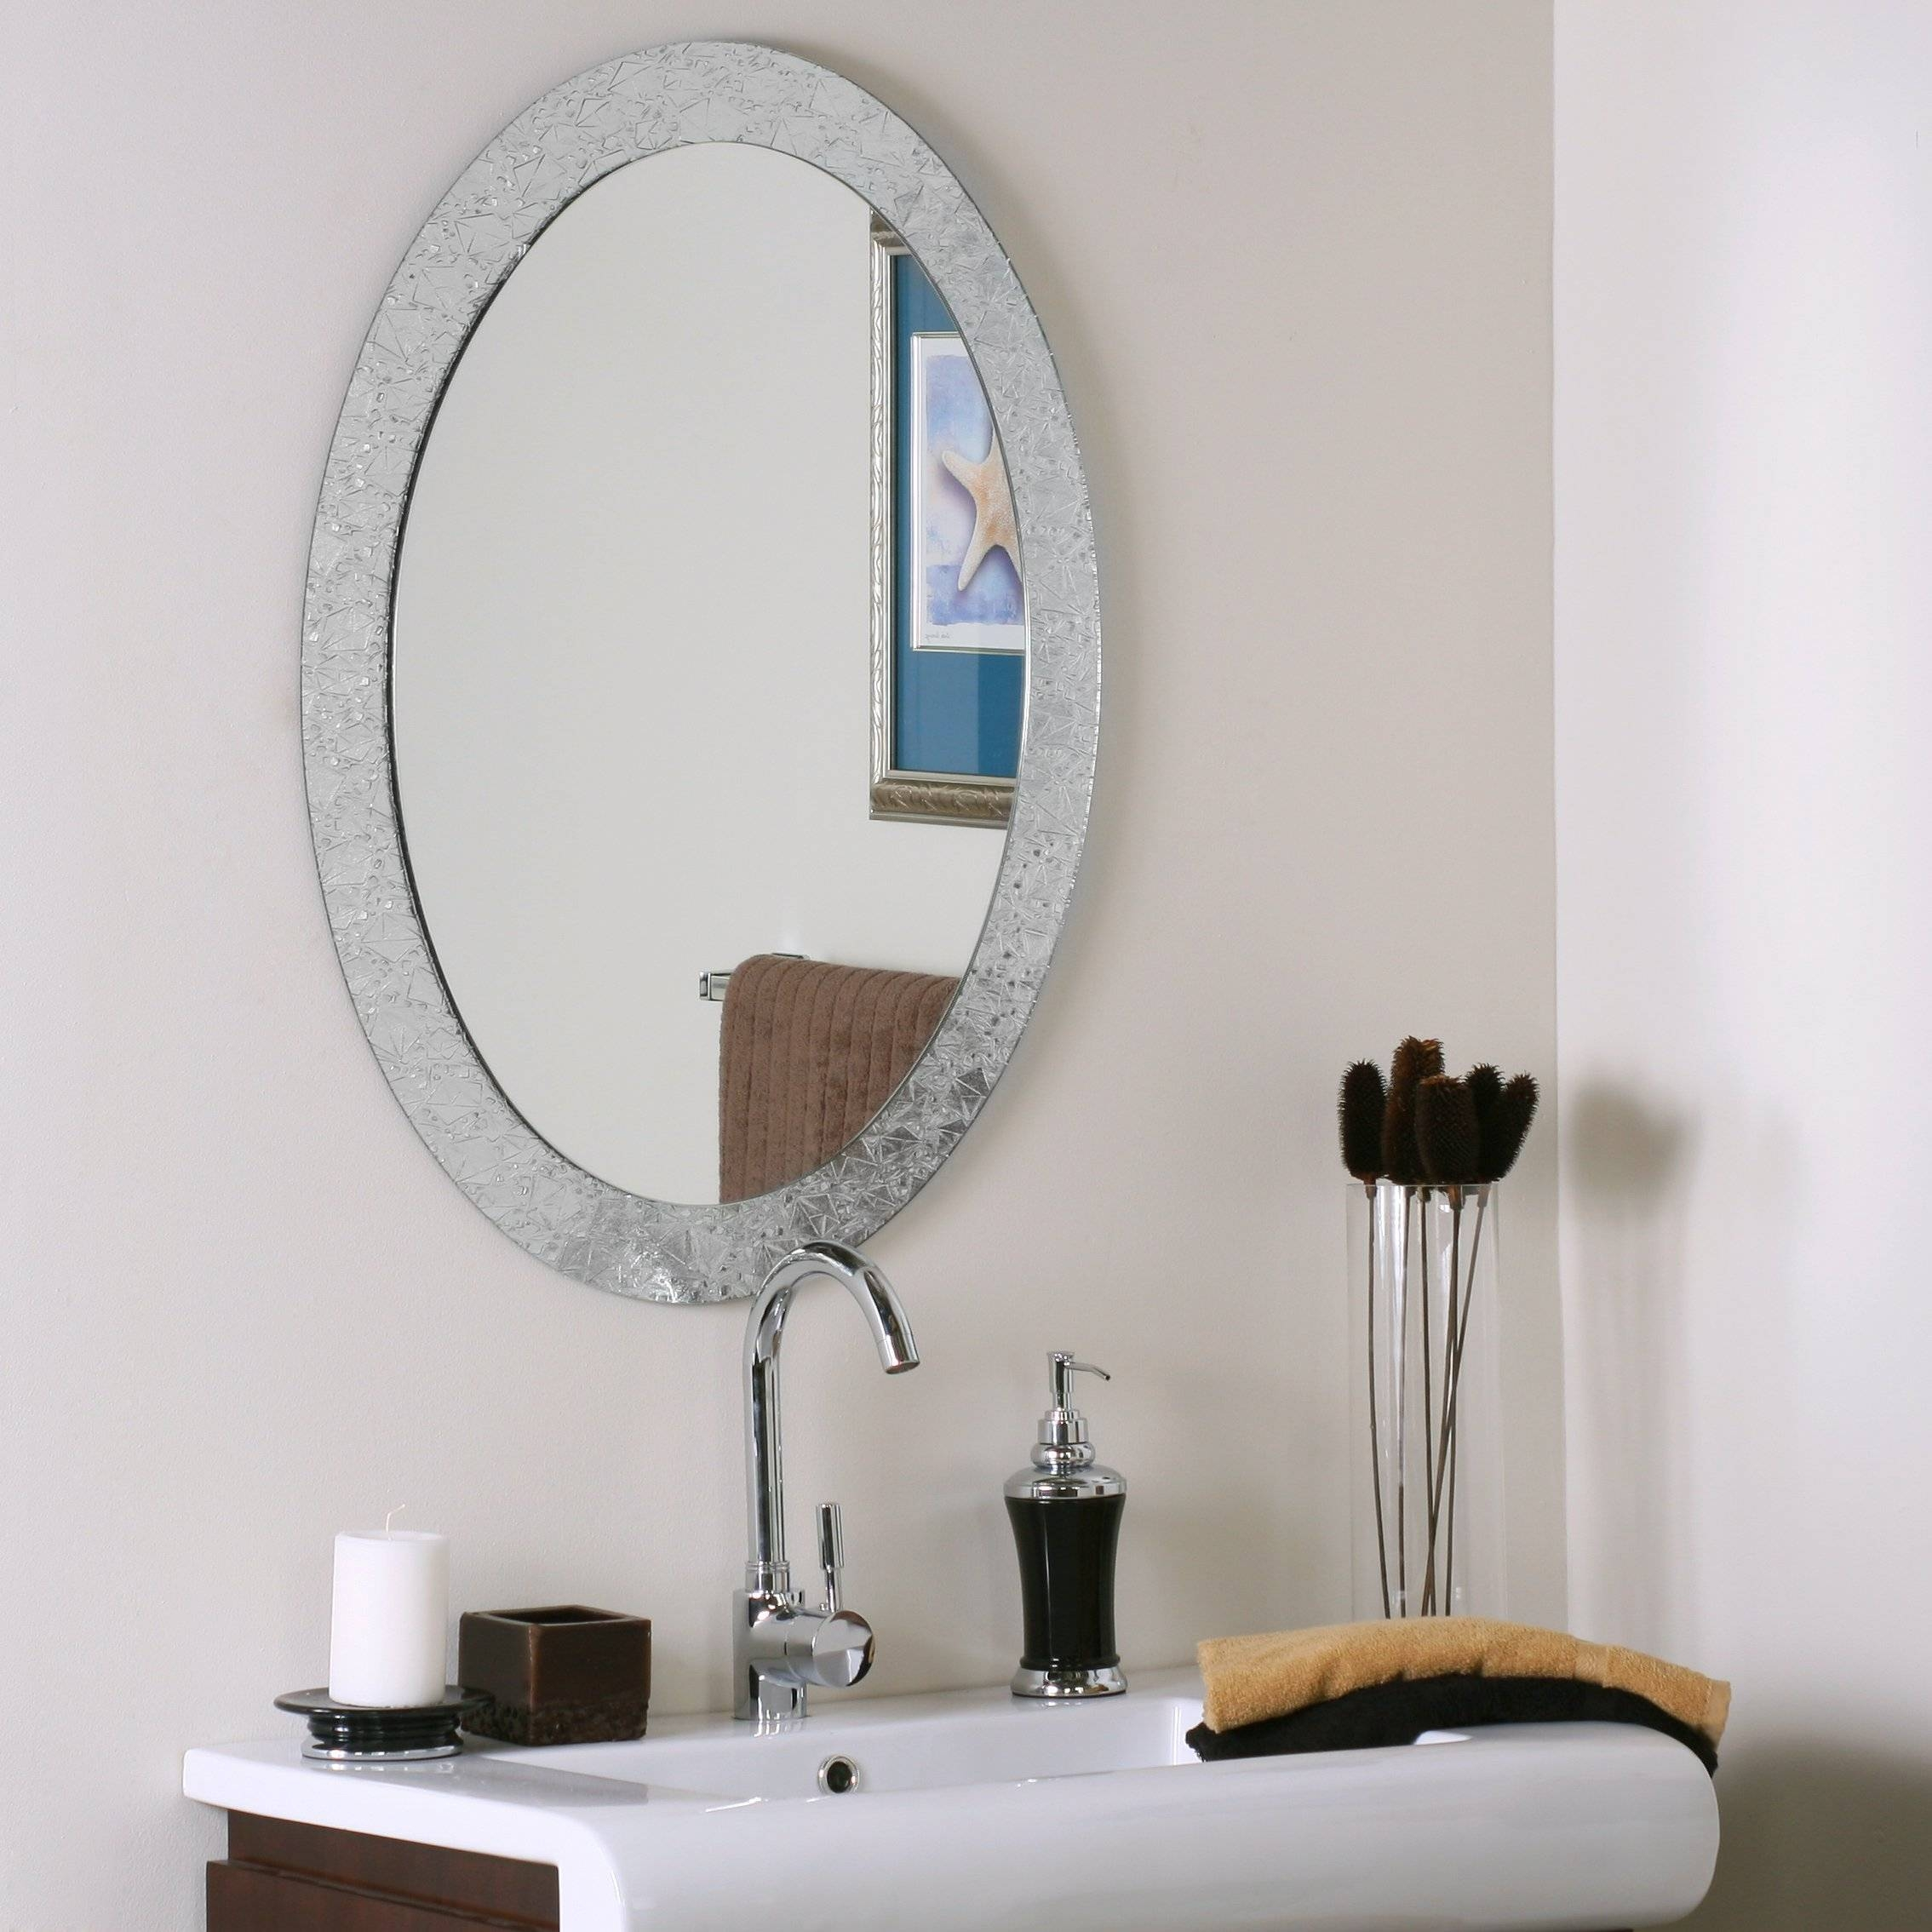 Bathroom Decorative Mirrors For Small Decorative Mirrors (View 1 of 25)